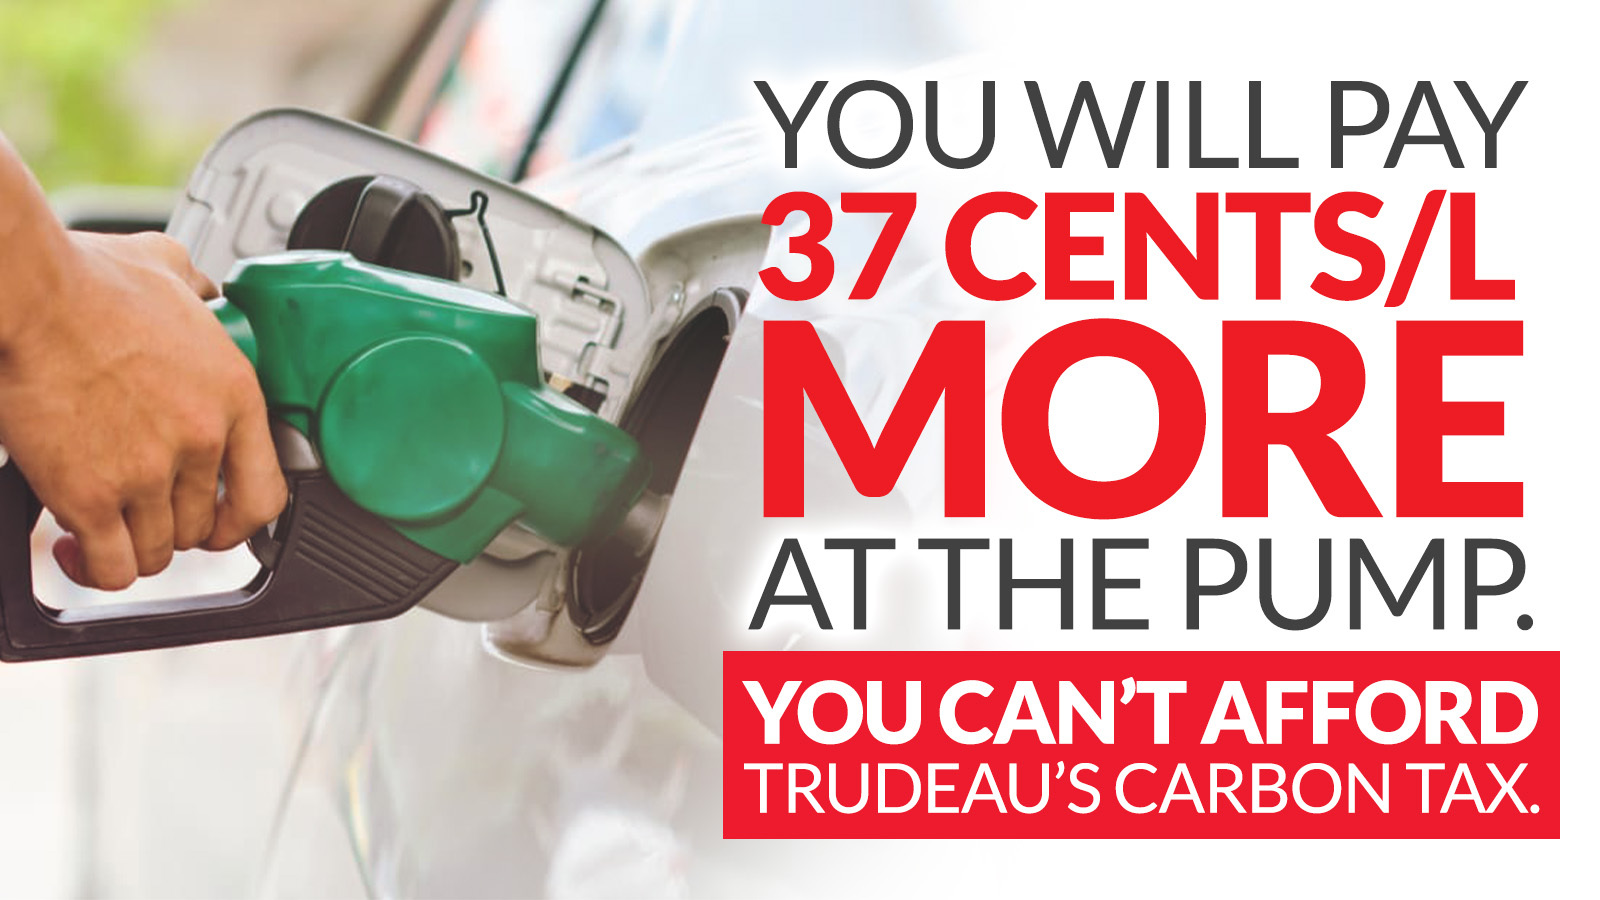 LIBERAL CARBON TAX TO TRIPLE, ENERGY WORKERS AND ALL CANADIANS WILL PAY